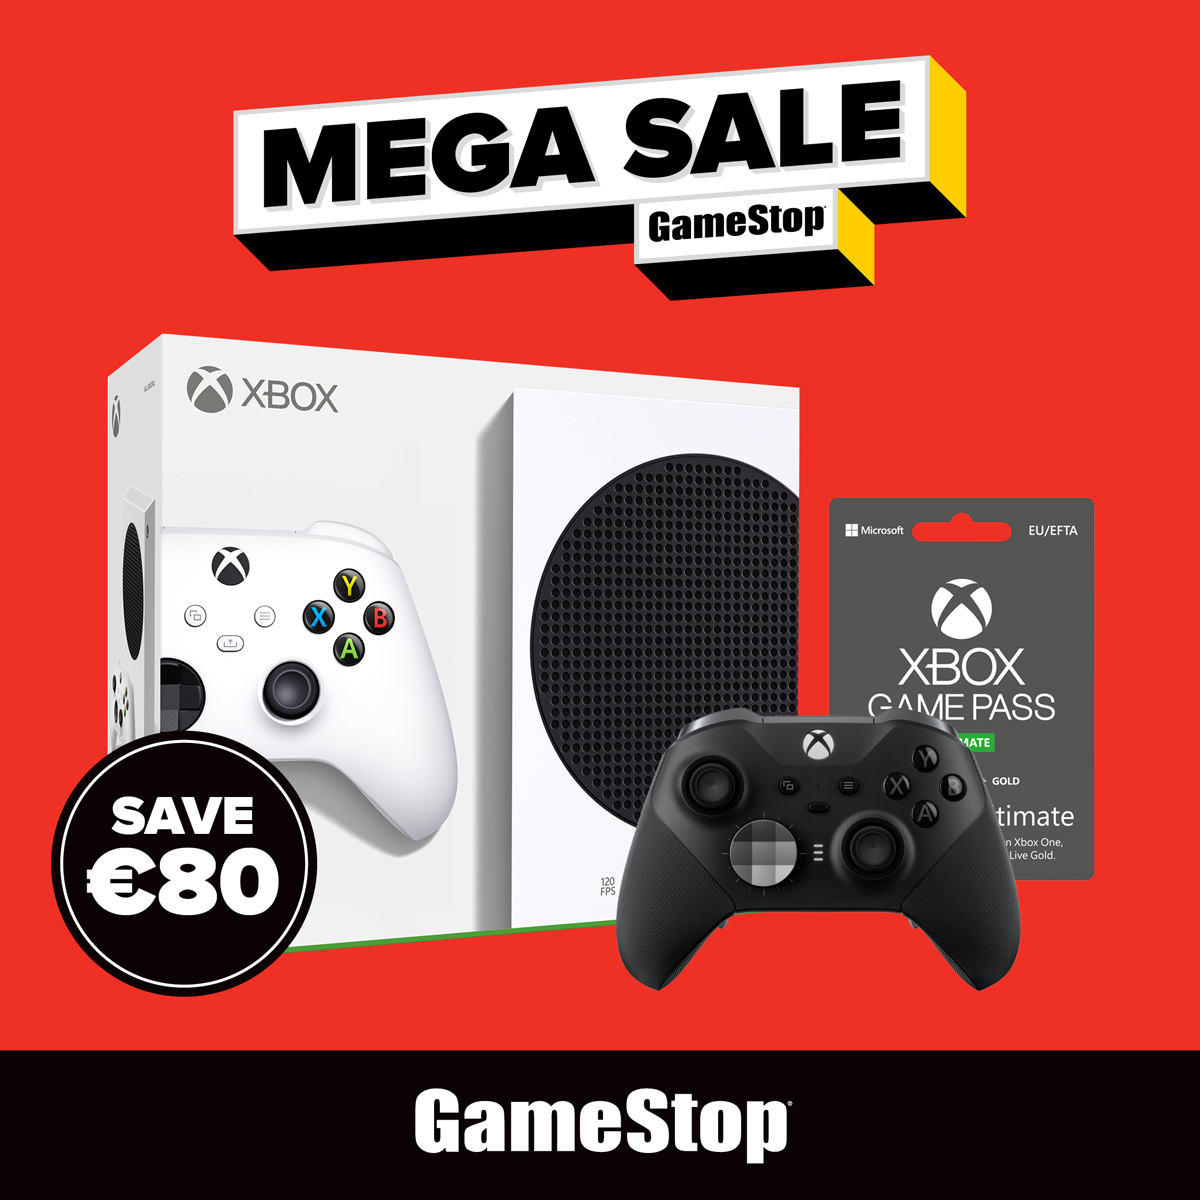 Mega Sale event at Gamestop Online